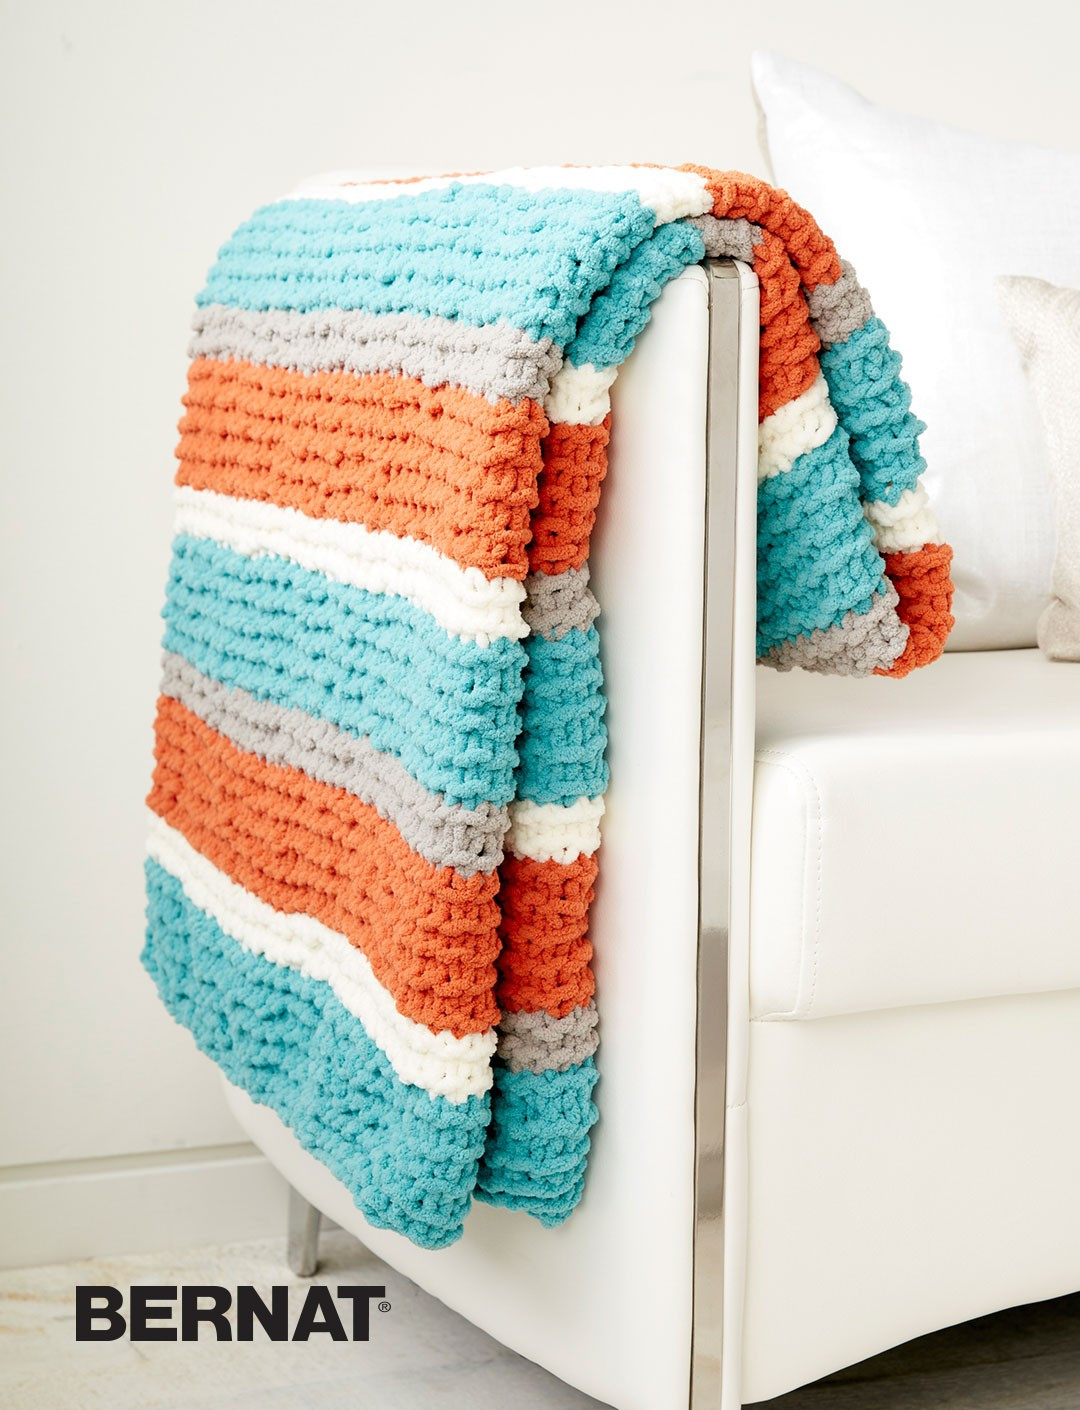 Bernat Crochet Patterns Fresh Bernat Get Fresh Throw Knit Pattern Of Awesome 45 Photos Bernat Crochet Patterns